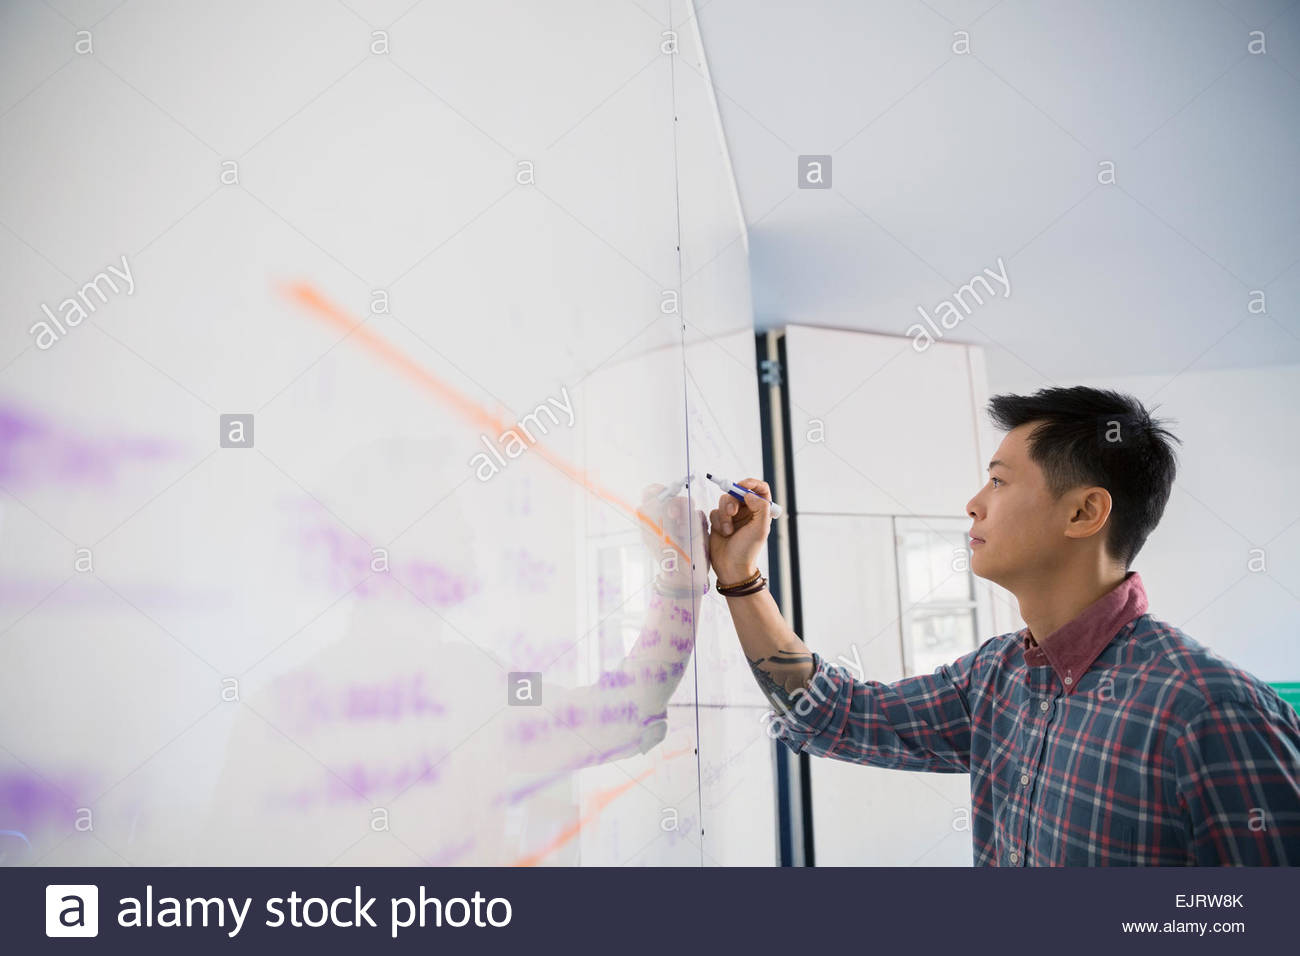 Businessman writing on whiteboard - Stock Image